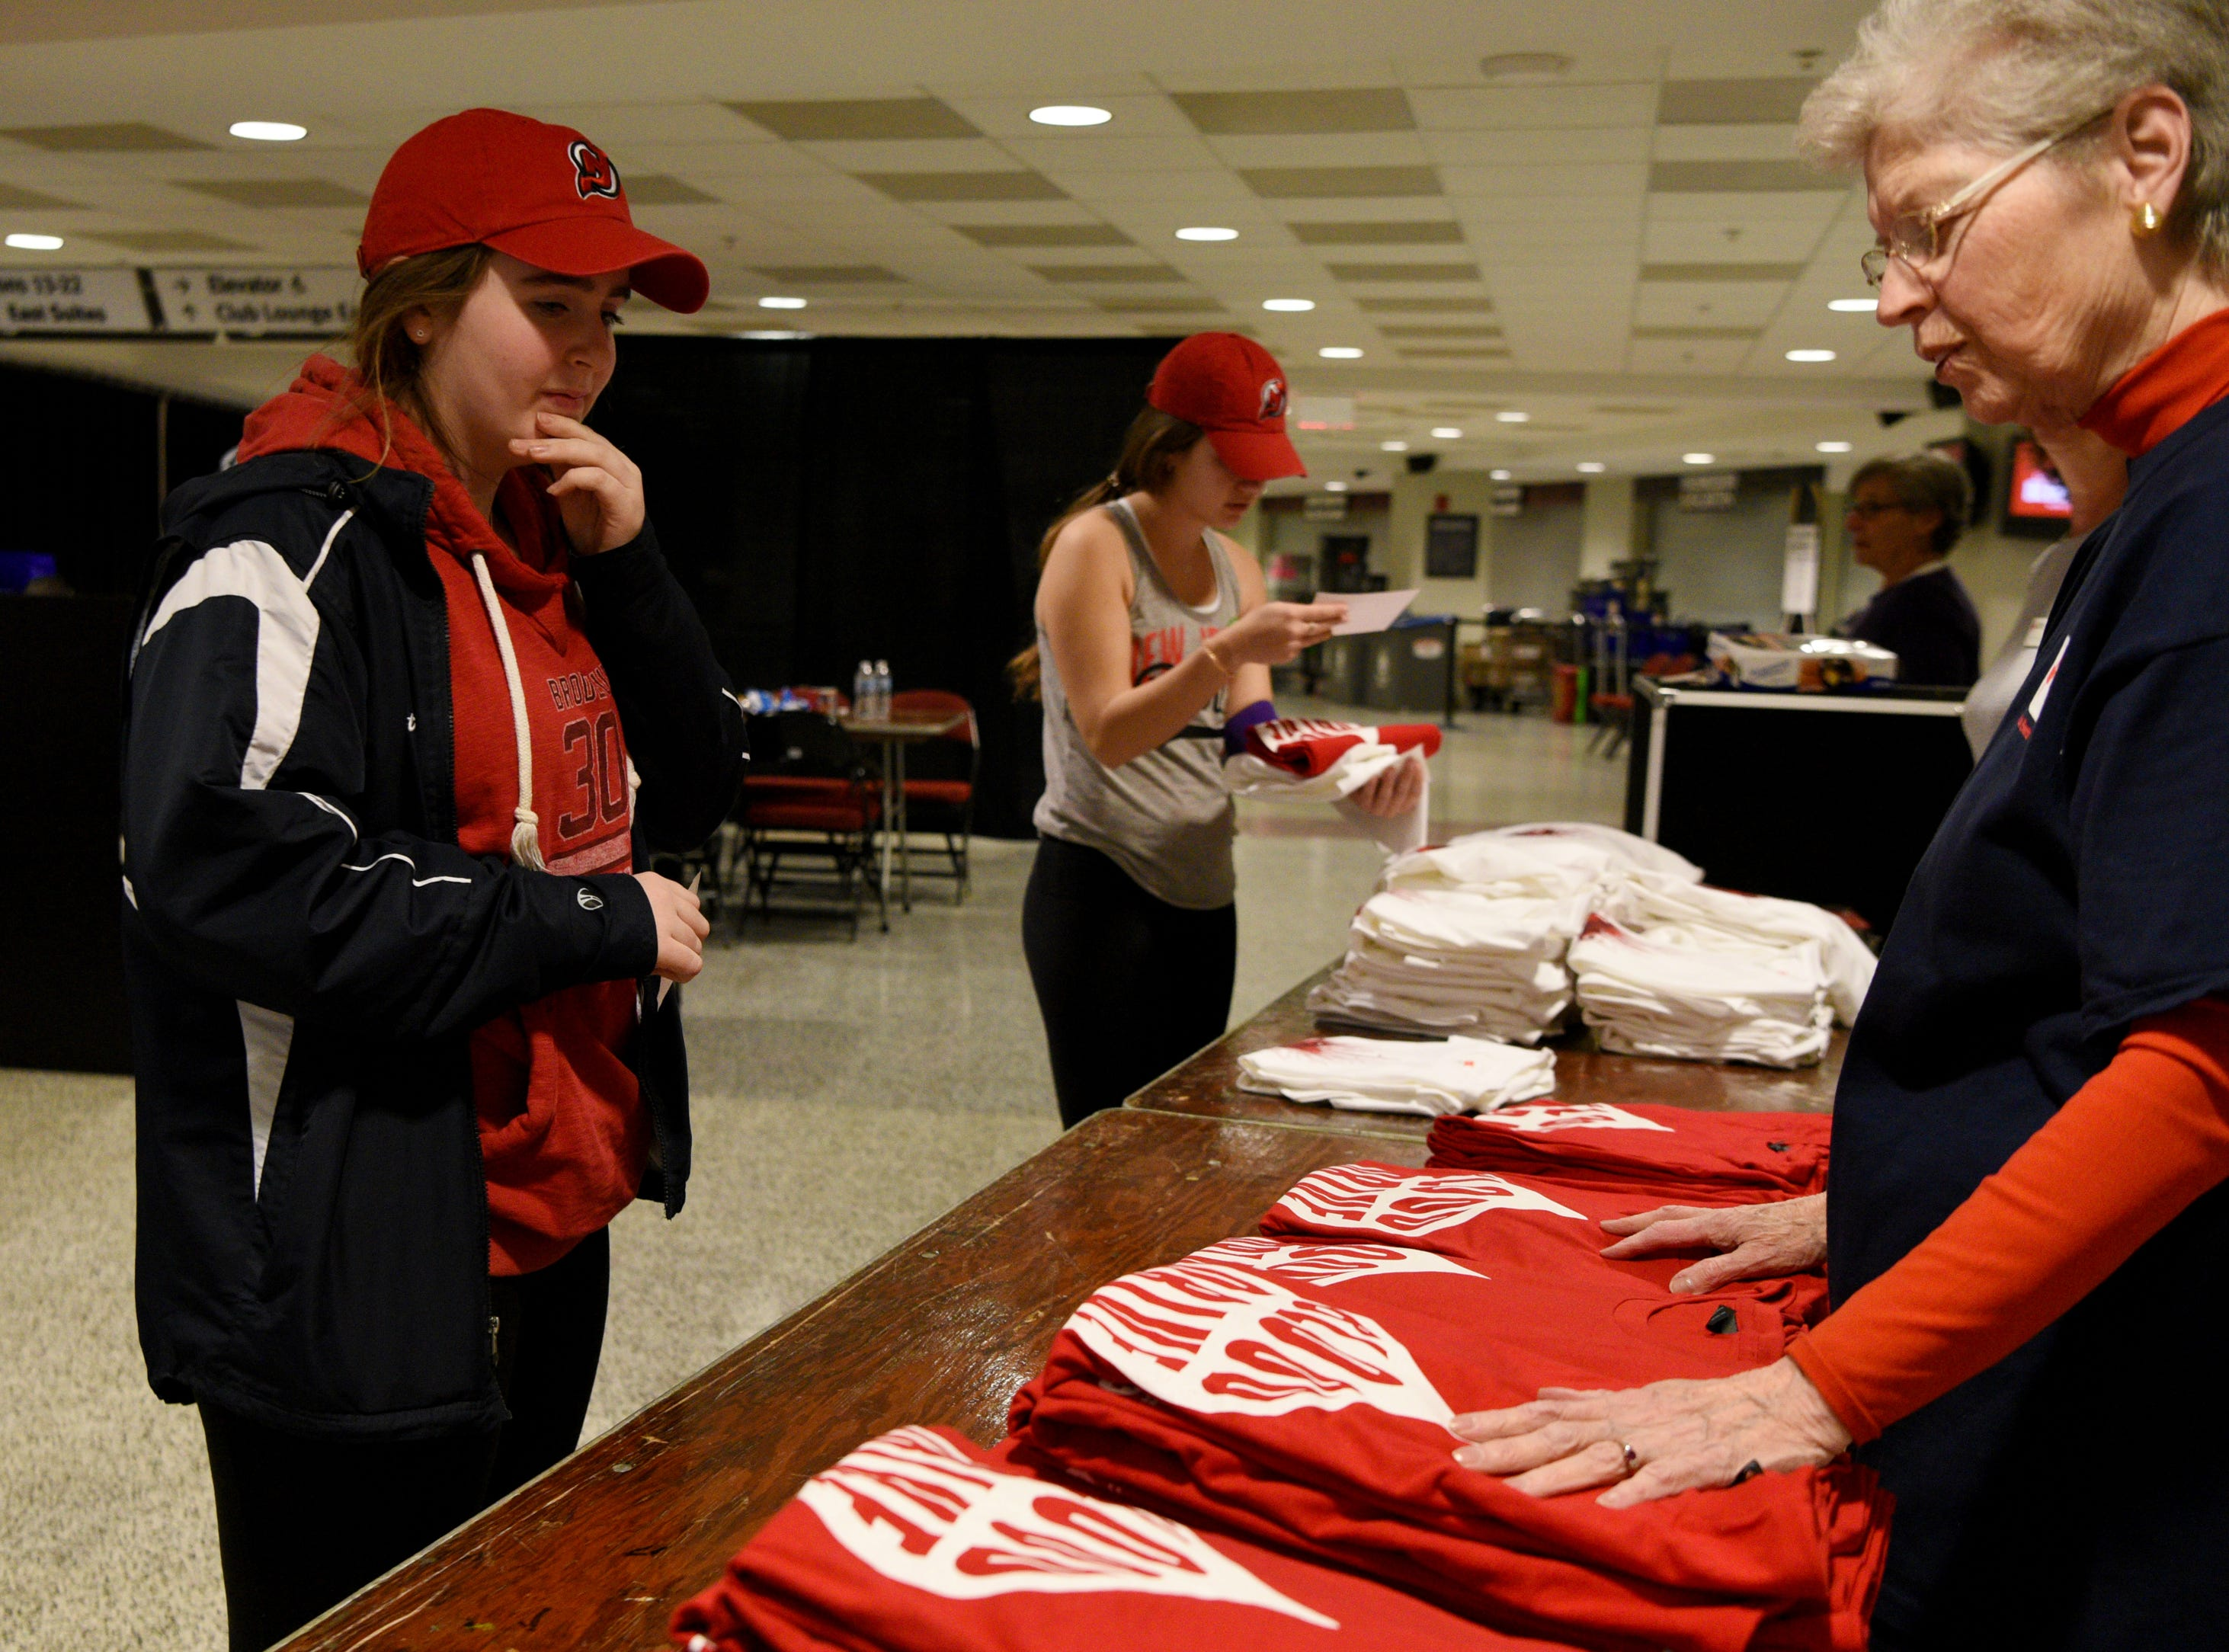 The New Jersey Devils and RWJBarnabas Health hosted their third annual blood drive in coordination with the American Red Cross on Sunday, March 10, 2019 at the Prudential Center in Newark. Bridget Clarke and Lily Krok of Freehold, pick up their free t-shirts and vouchers for Devils tickets after donating blood.